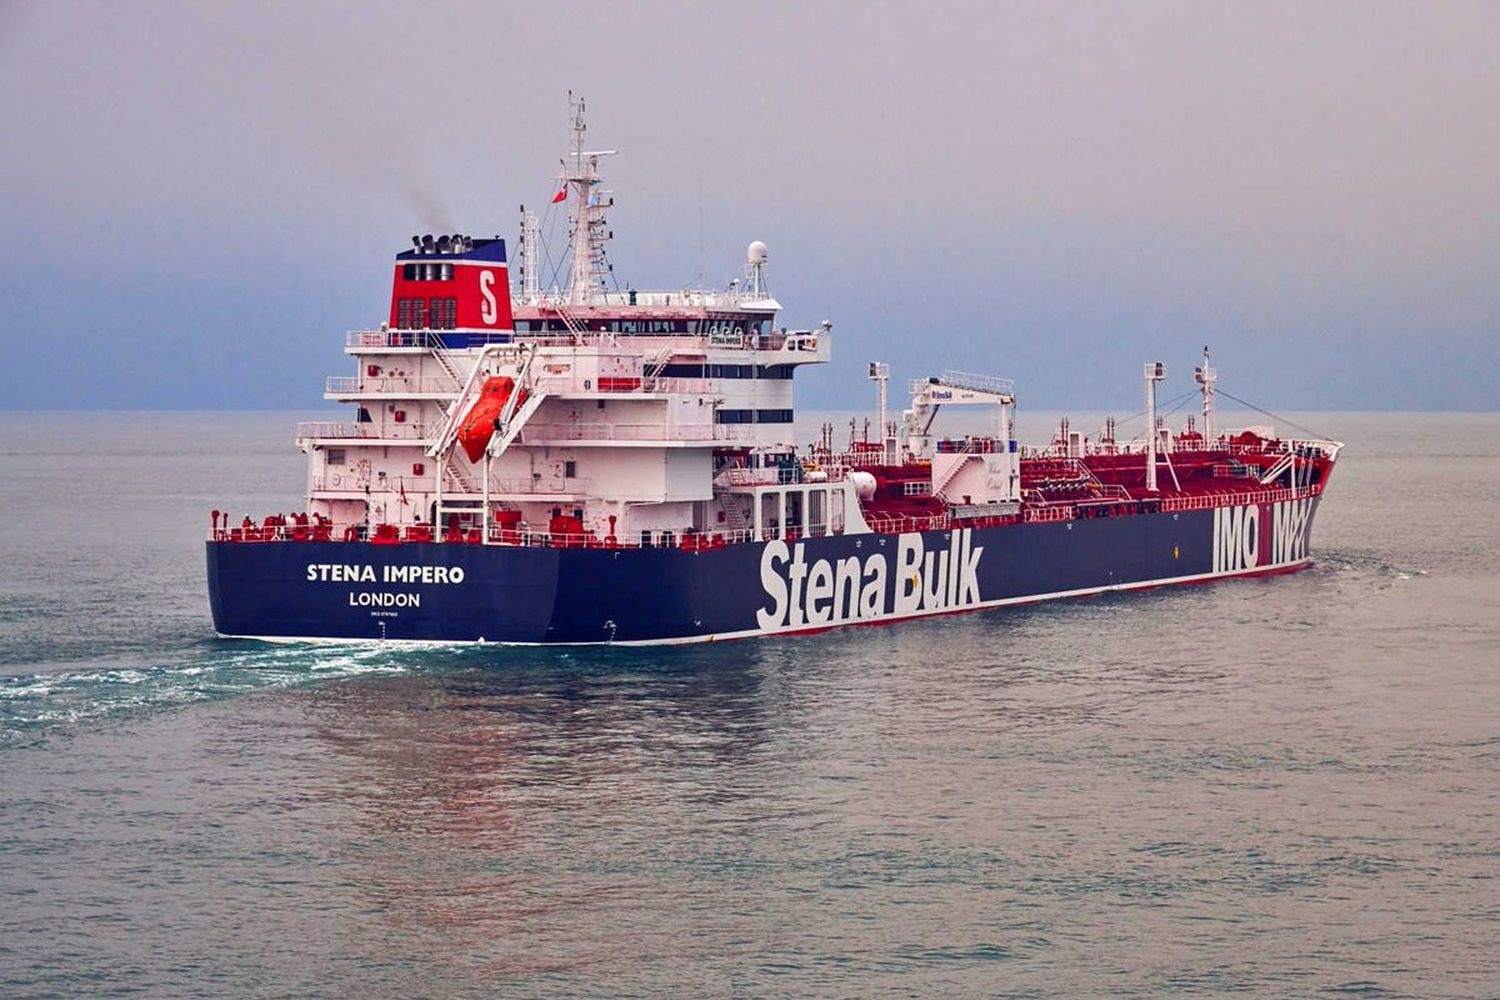 An undated handout photograph shows the 'Stena Impero', a British-flagged vessel owned by Stena Bulk, at an undisclosed location, obtained by Reuters on Friday. (Stena Bulk via Reuters)